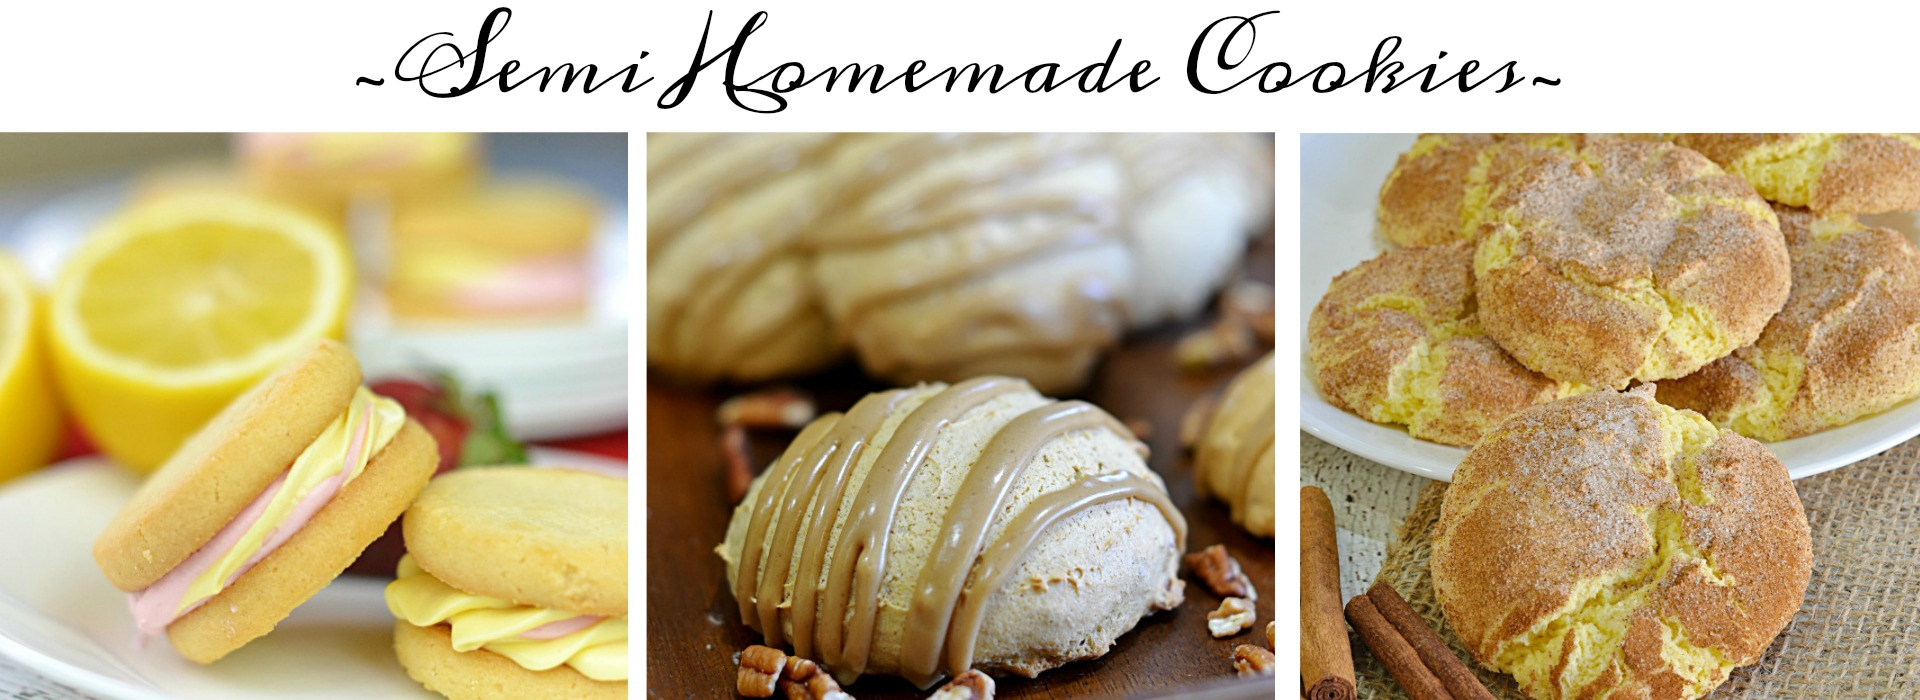 Semi Homemade Recipes|Breakfast, Appetizers, Main Dish, Cakes, Cupcakes, Party Food..All Semi Homemade!